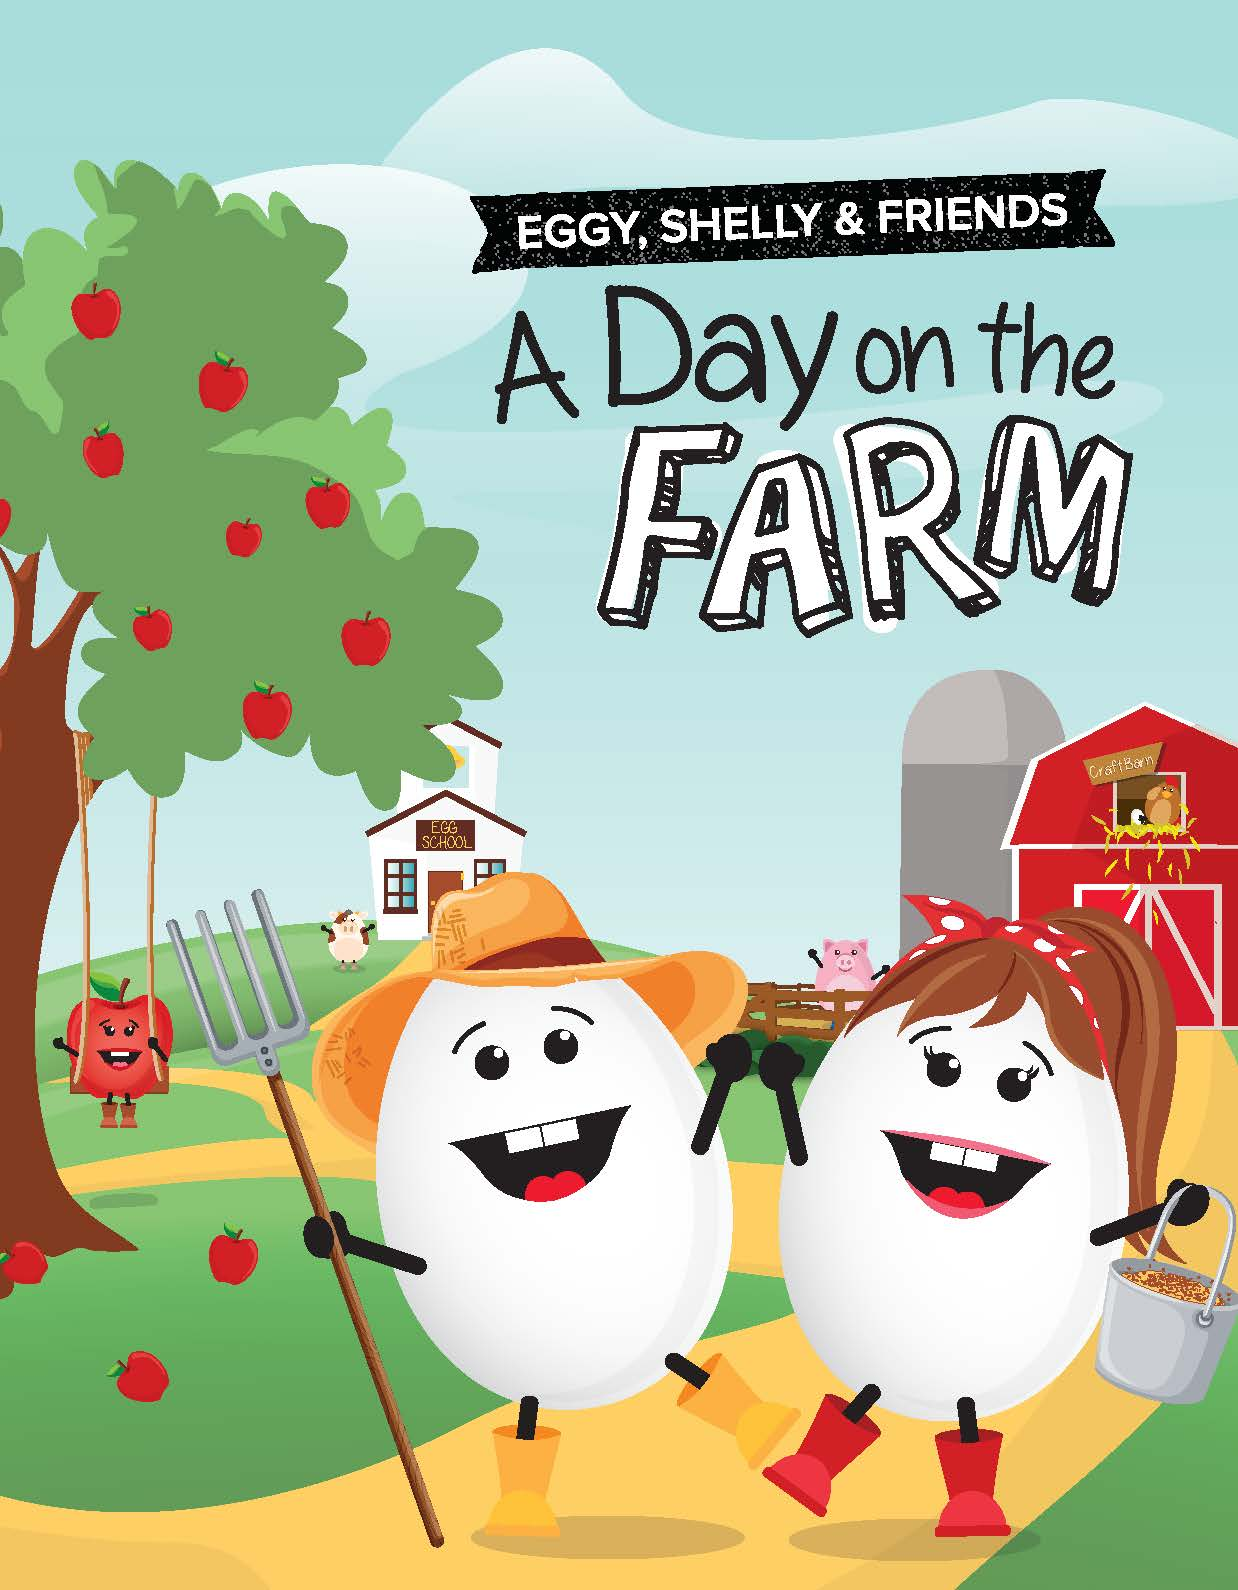 Day On The Farm activity book